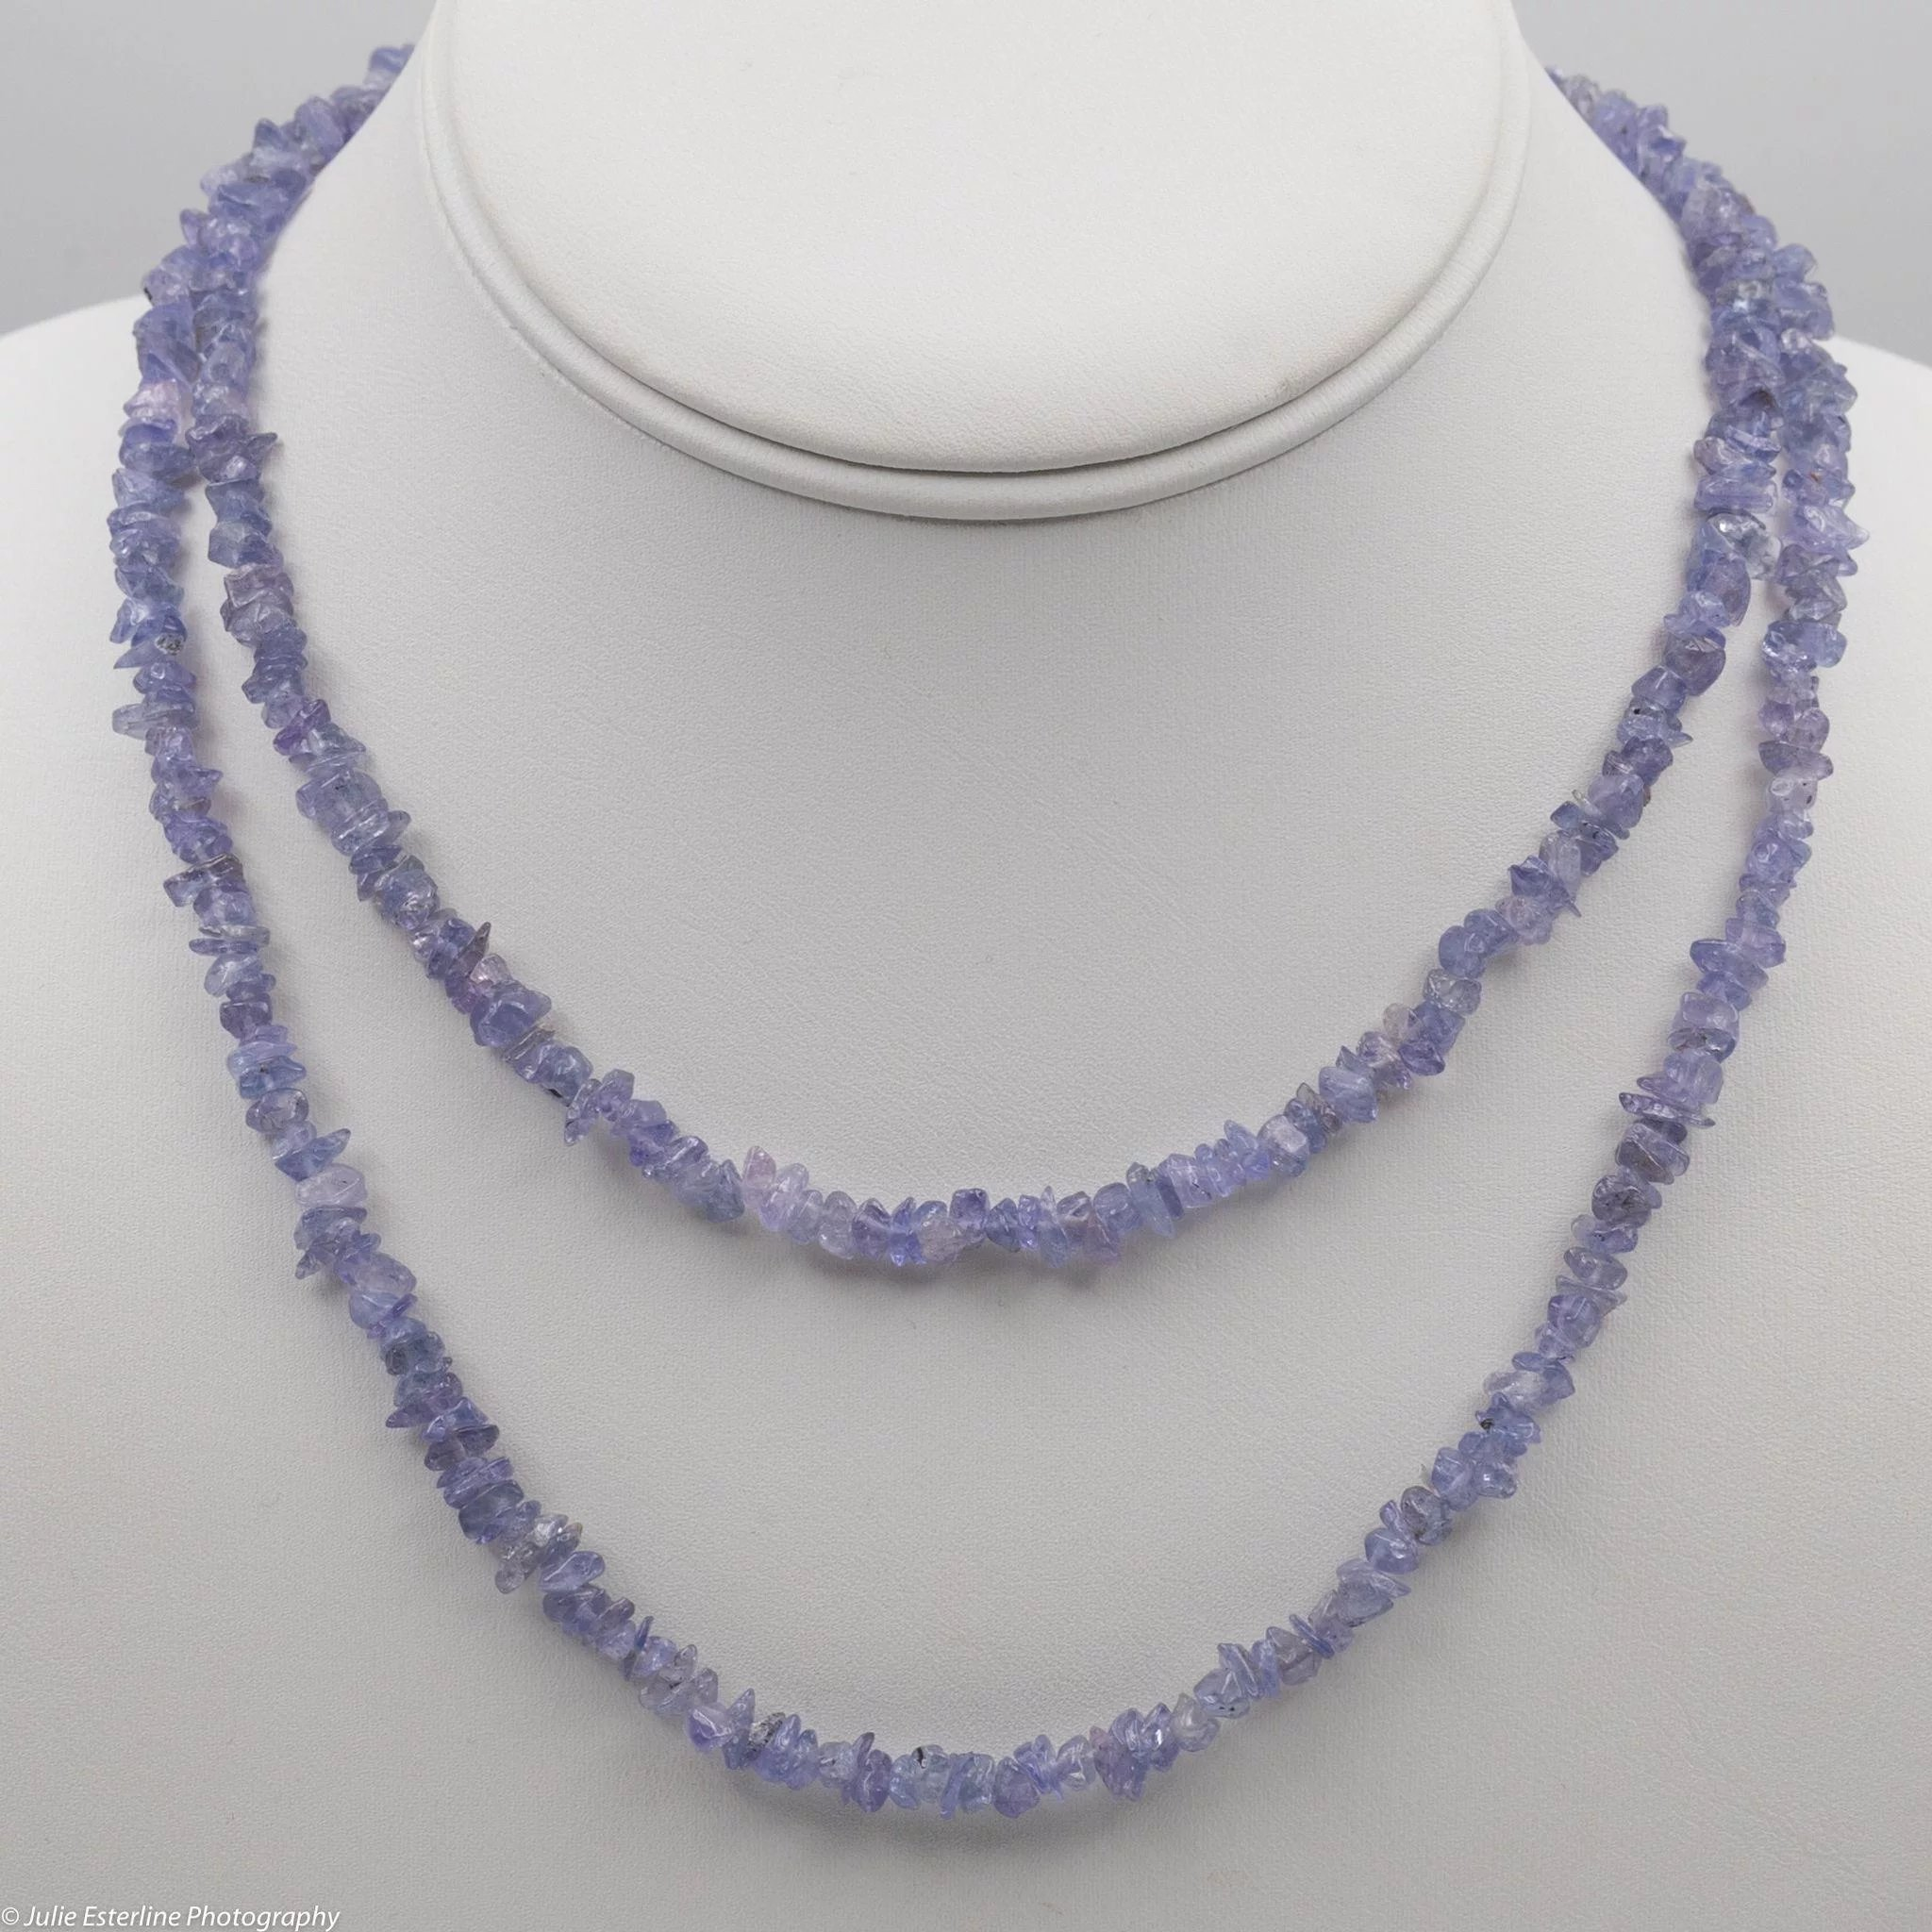 tanzanite tiffany necklace neckla by a co jewelry and lot details nyr diamond lotfinder